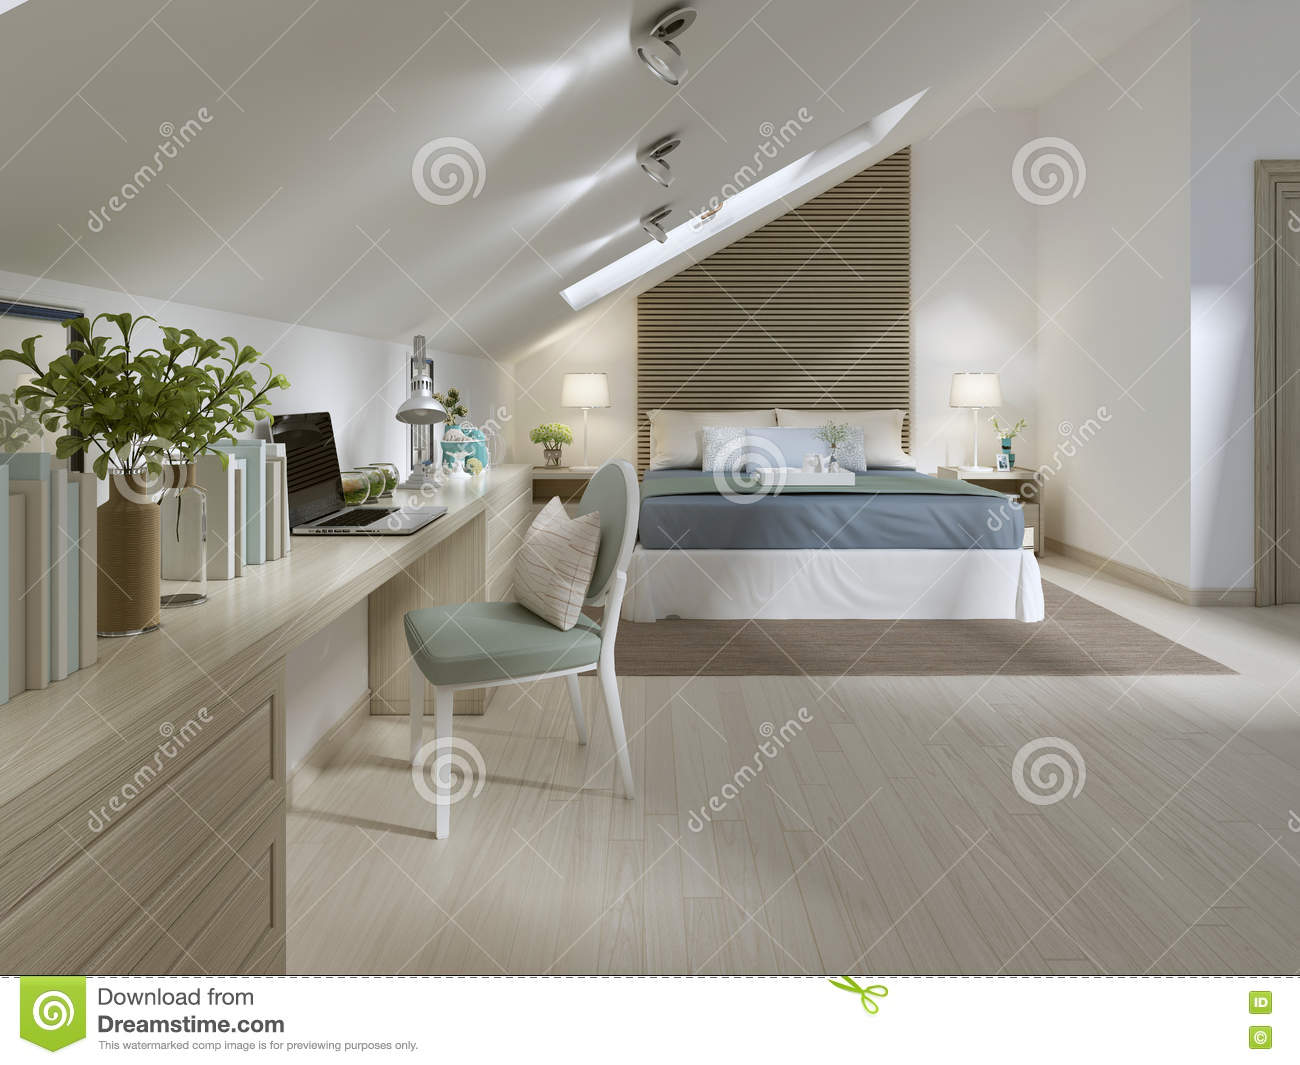 grande chambre coucher sur le plancher de grenier dans un style moderne illustration stock. Black Bedroom Furniture Sets. Home Design Ideas